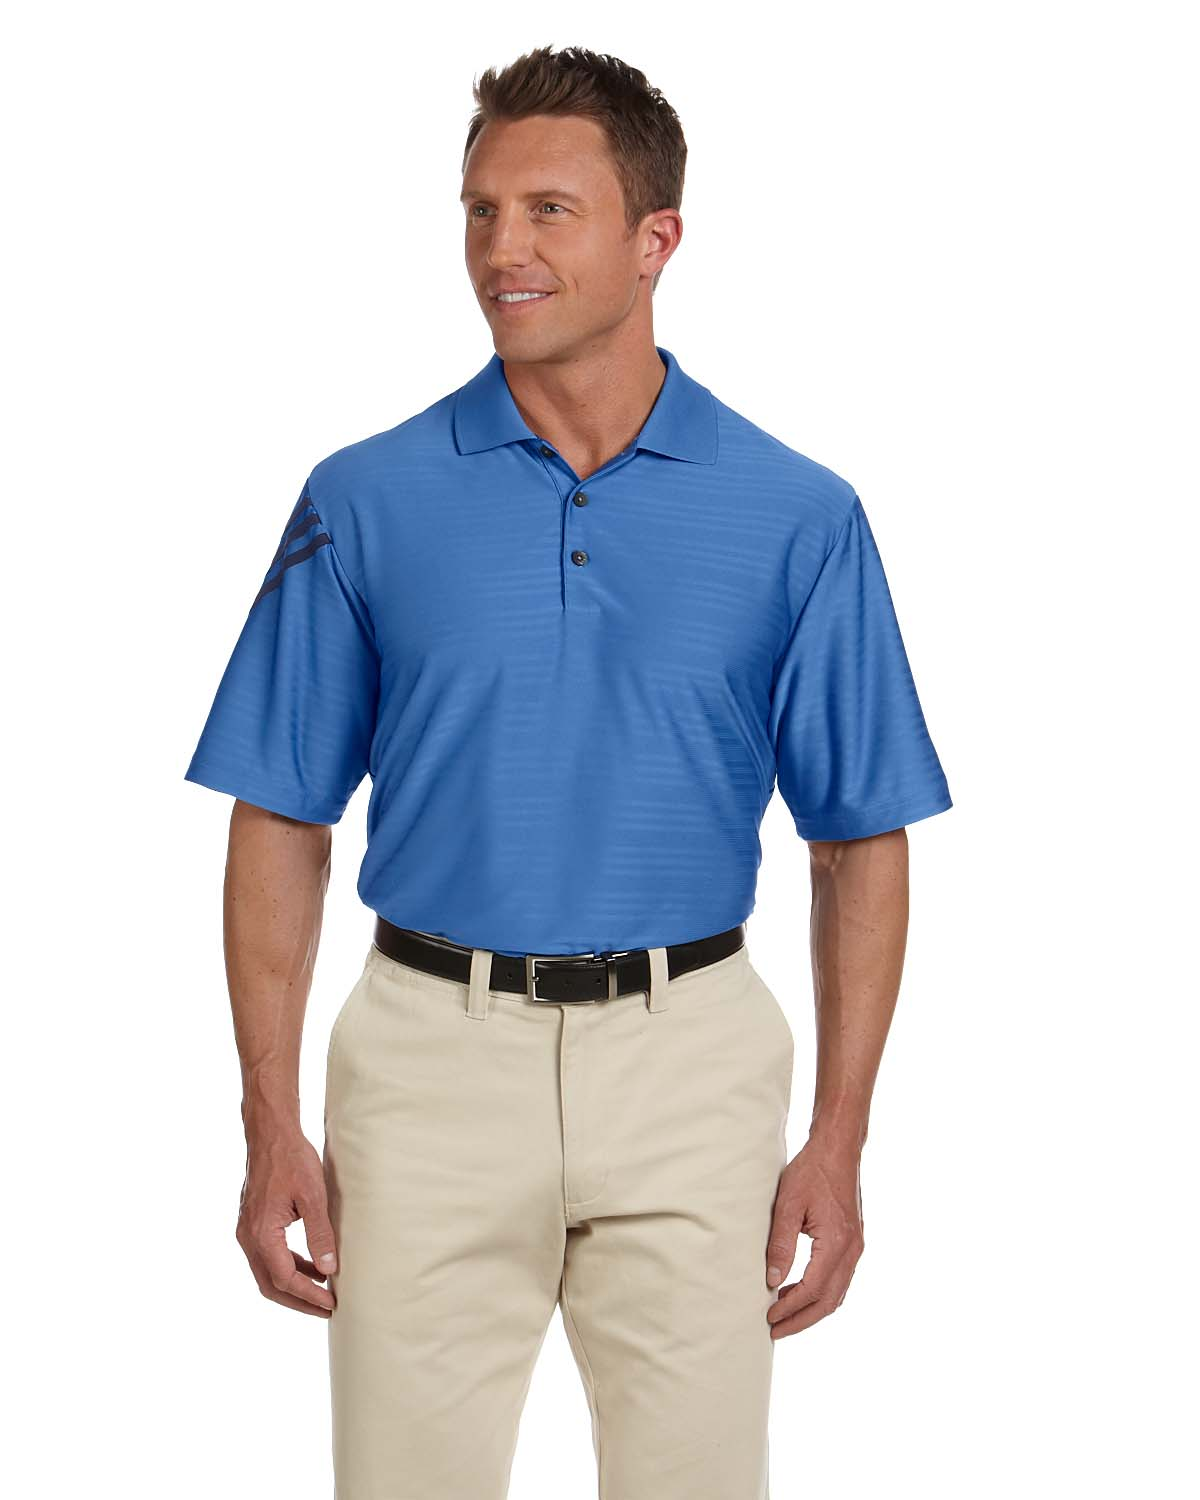 Adidas Golf Mens Climacool® Mesh Polo